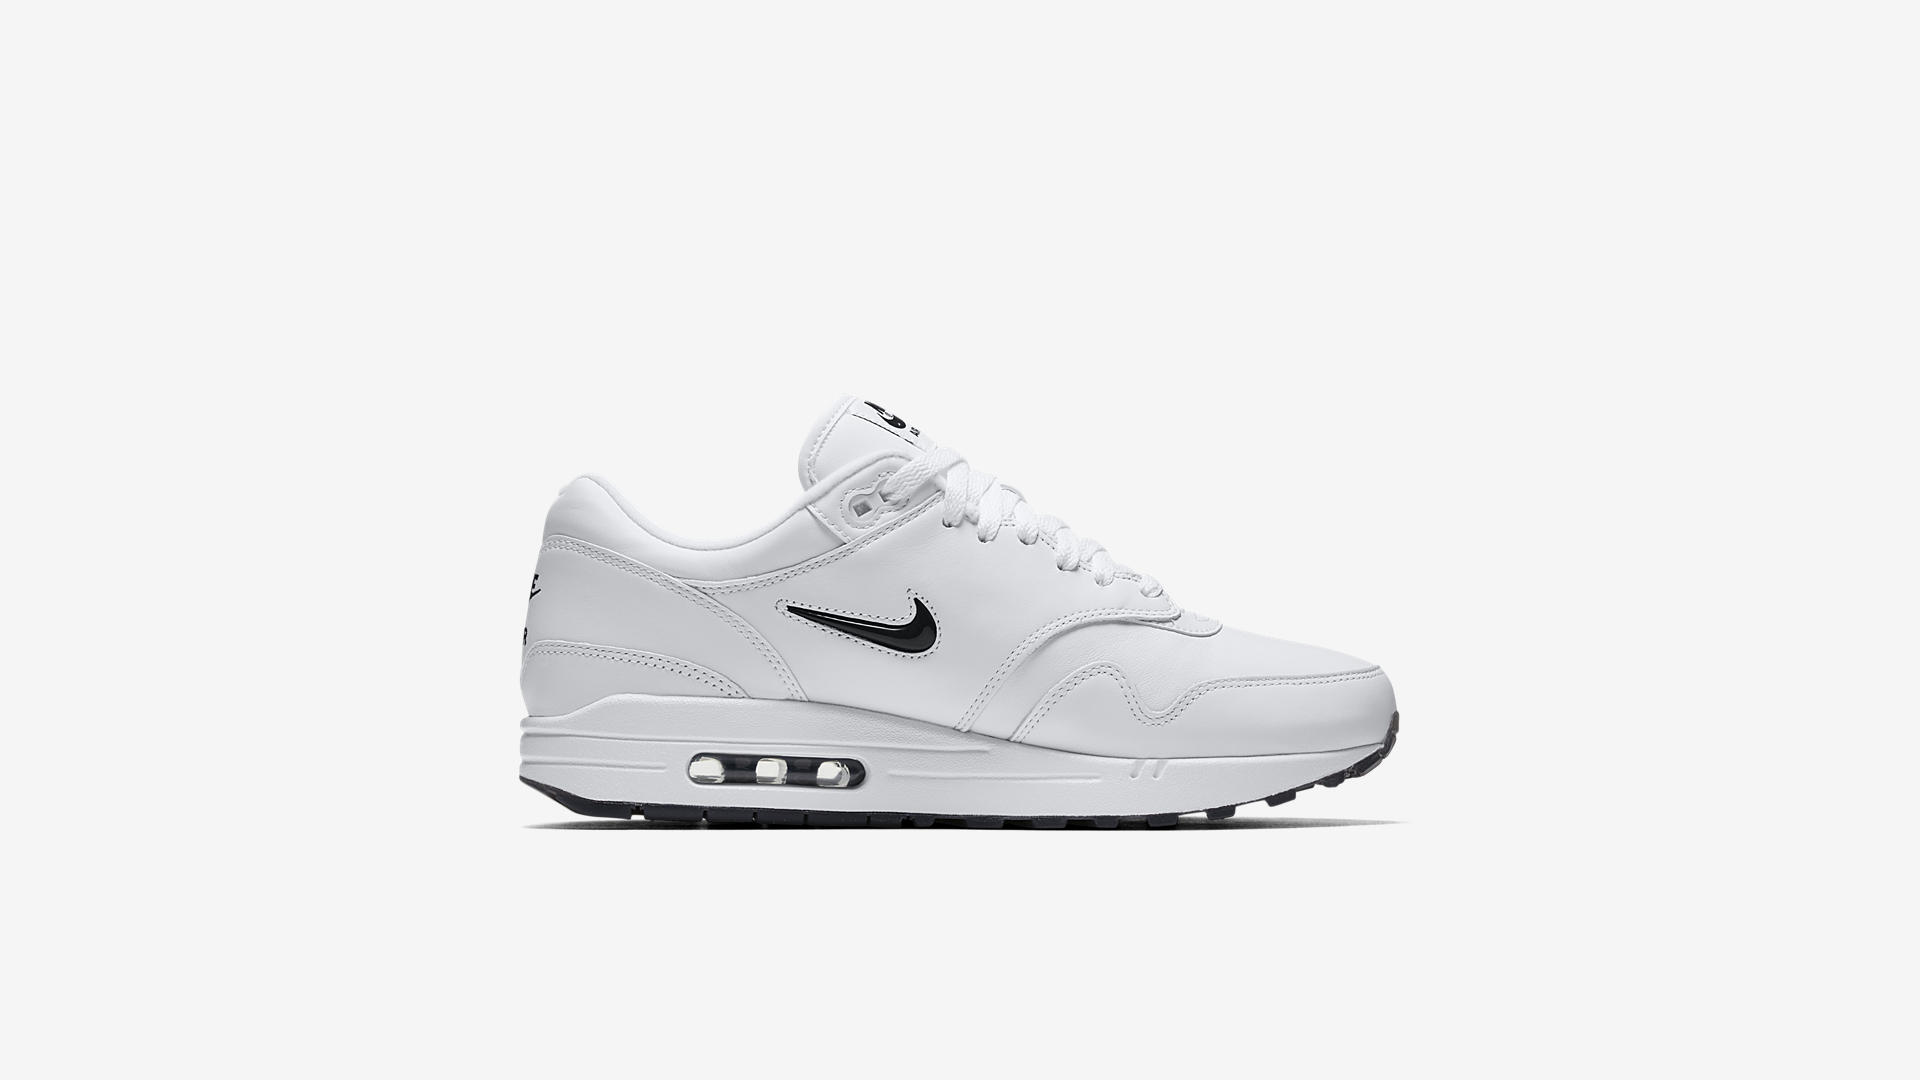 Nike Air Max 1 Jewel Black Diamond 918354 103 4